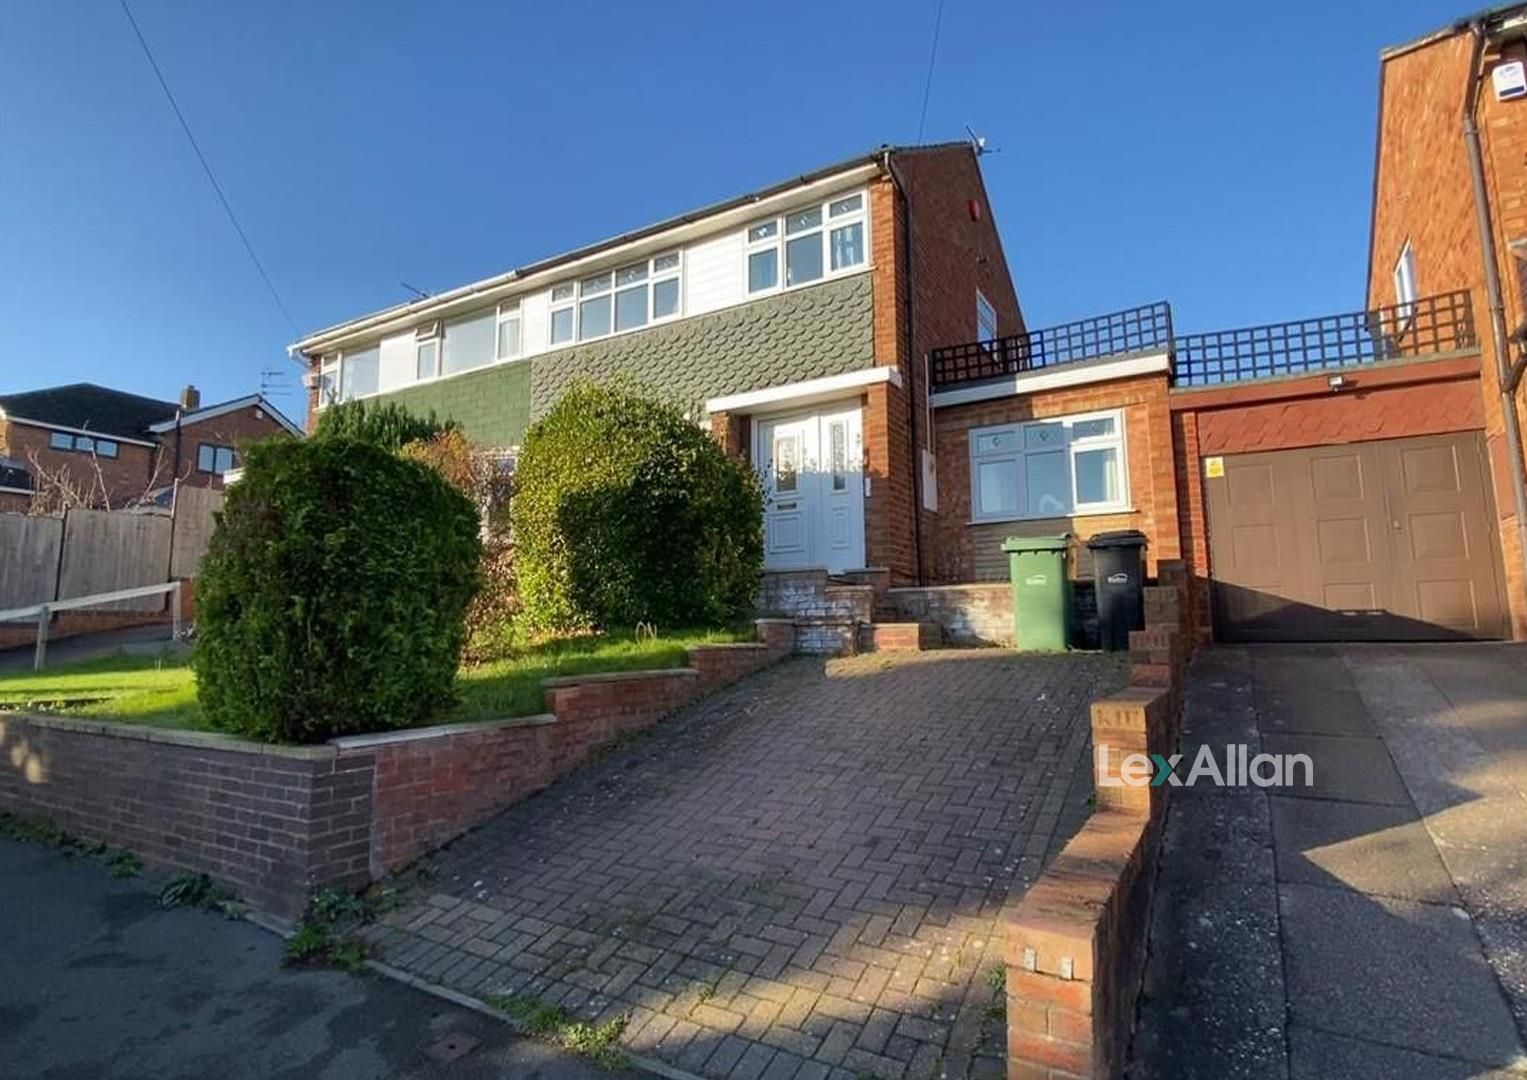 3 bed semi-detached for sale, DY6